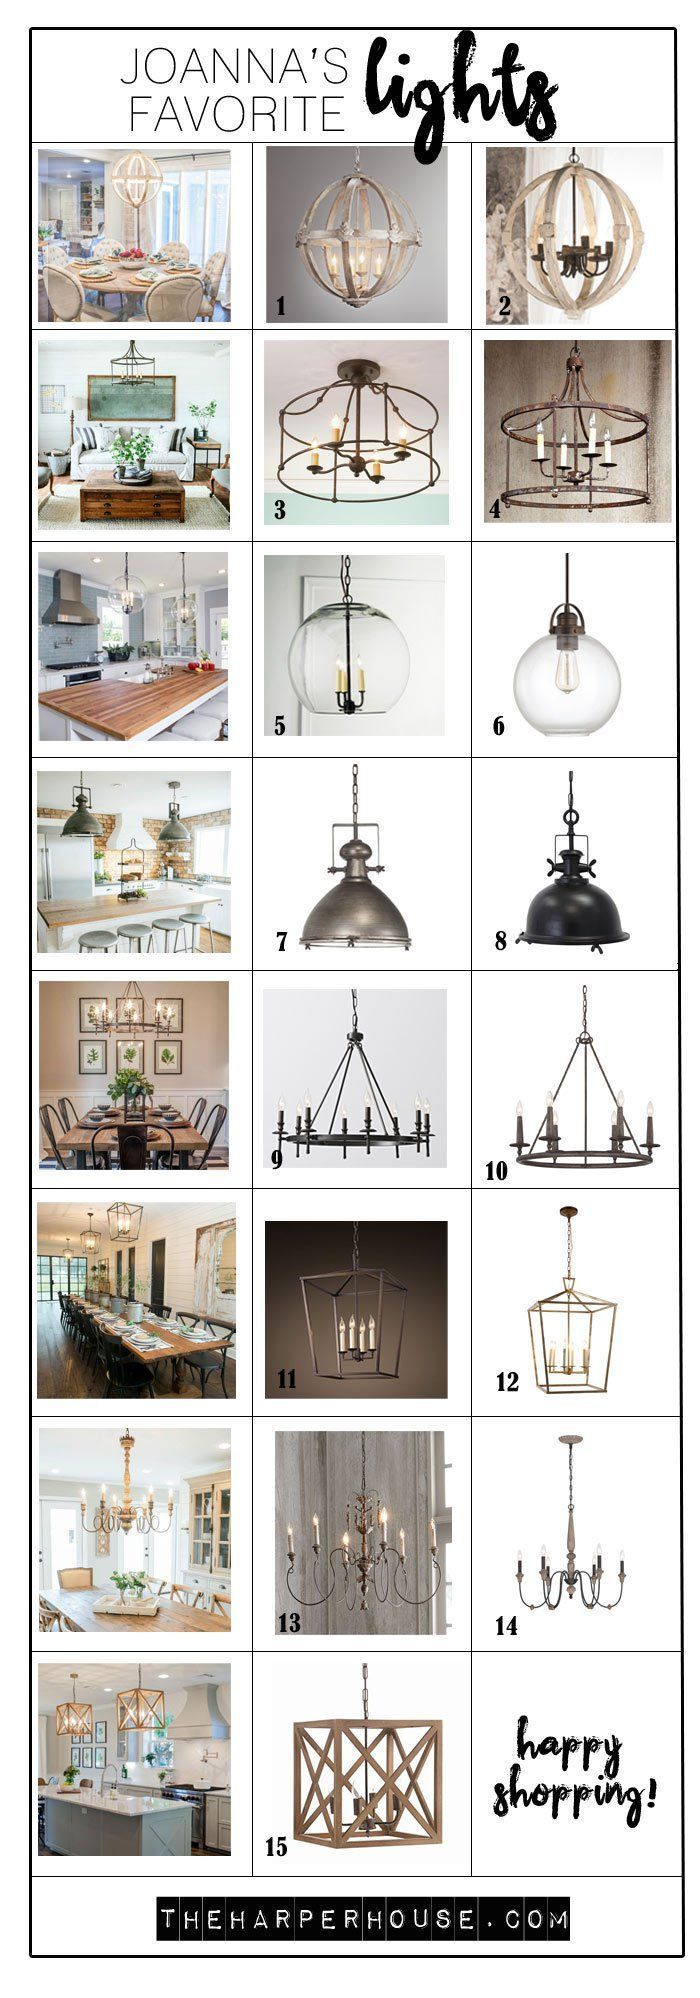 Check Out These Light Fixtures Used By Joanna Gaines On Fixer Upper Shopping Sources